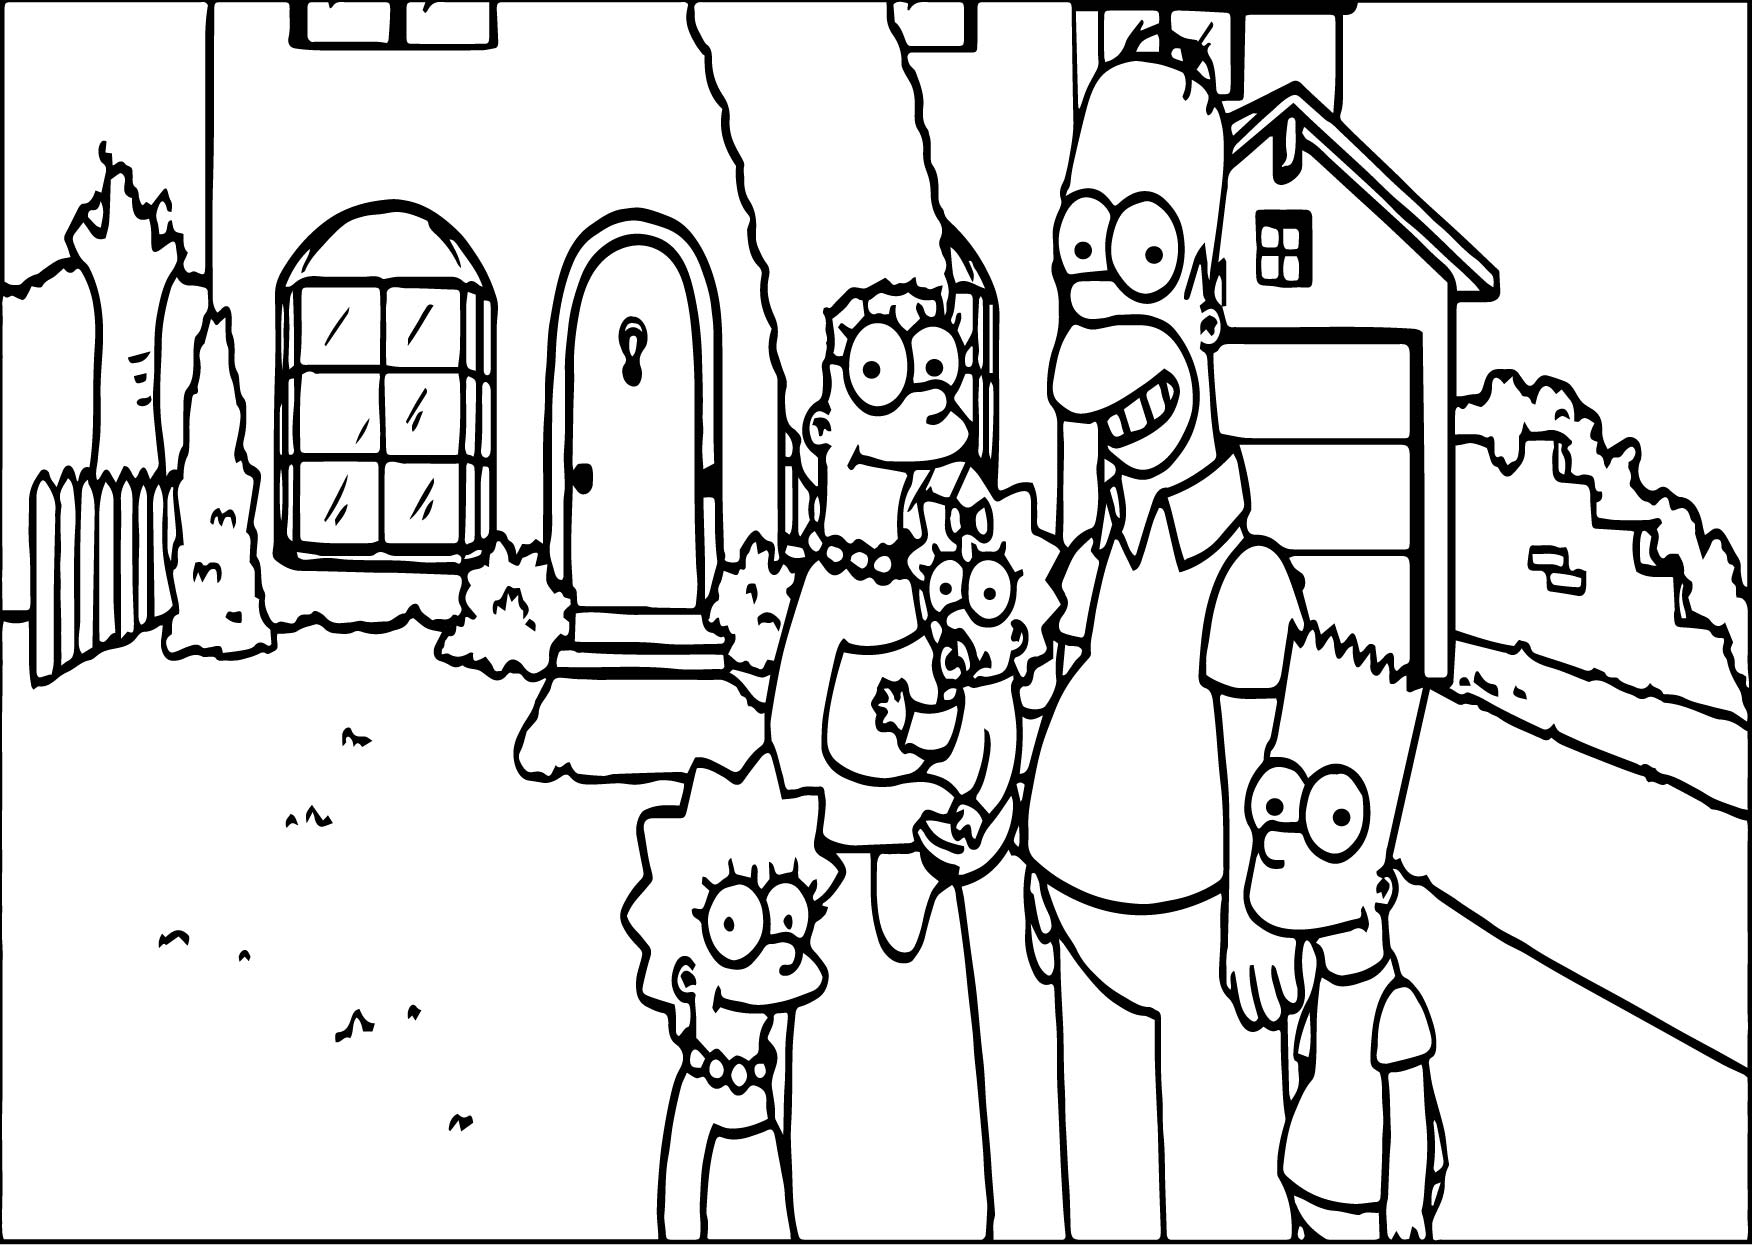 Simpsons Jef Family Photo Coloring Page